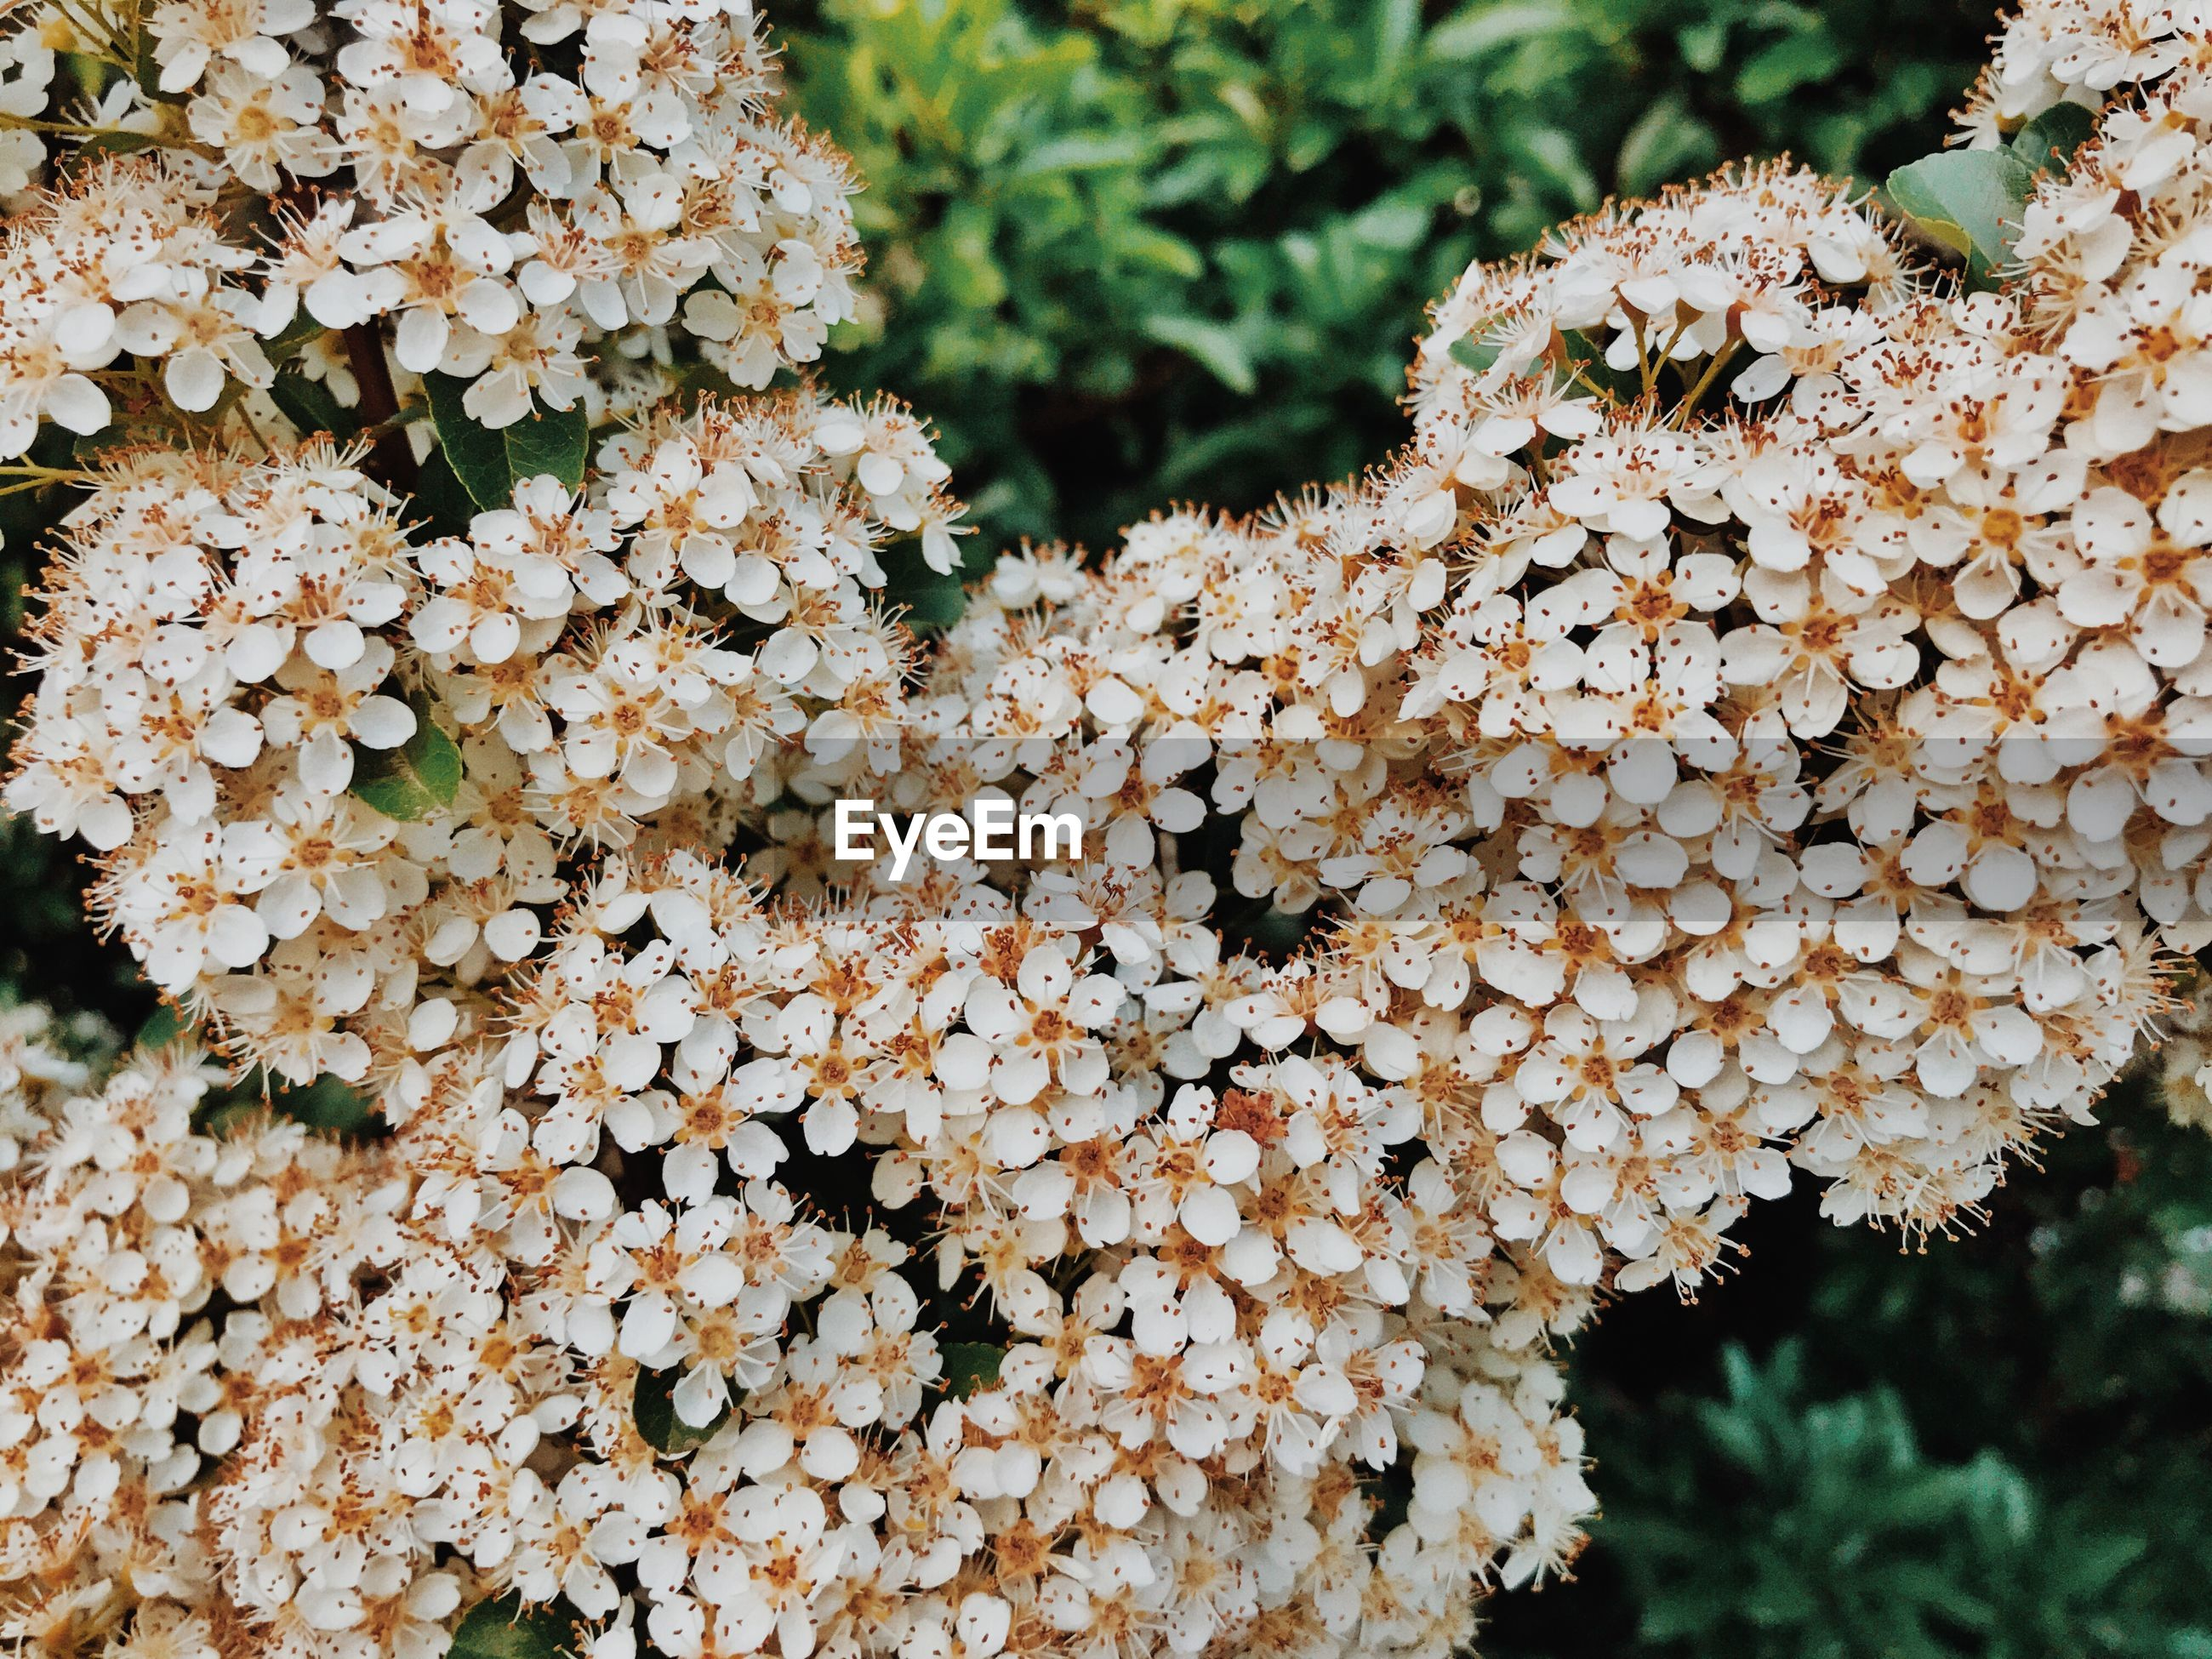 CLOSE-UP OF HYDRANGEA GROWING ON PLANT